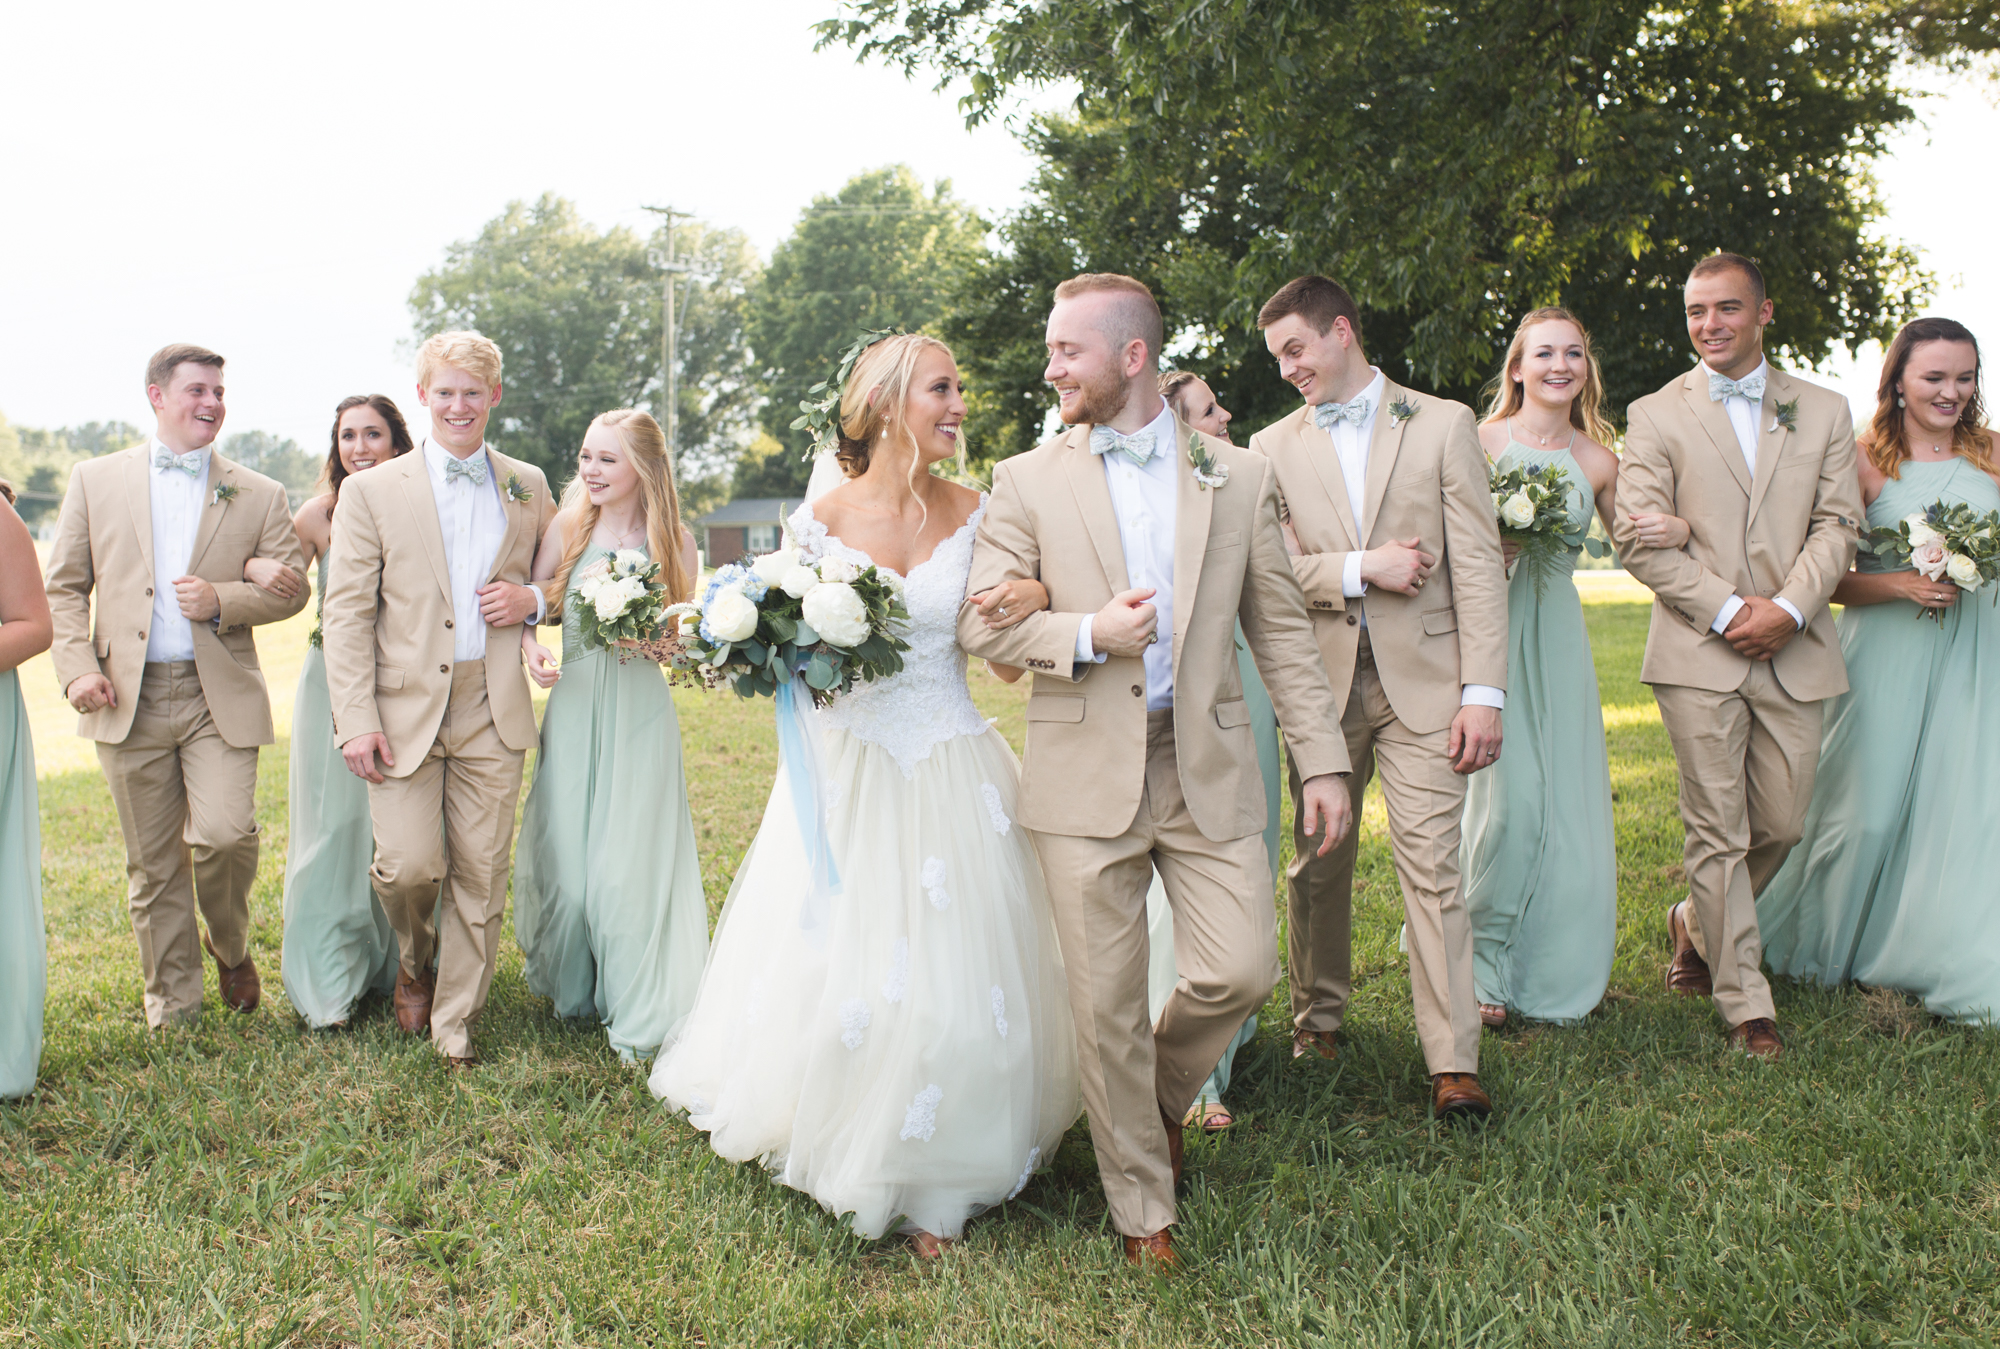 lauren+lucas rock hill south carolina wedding-7137.jpg